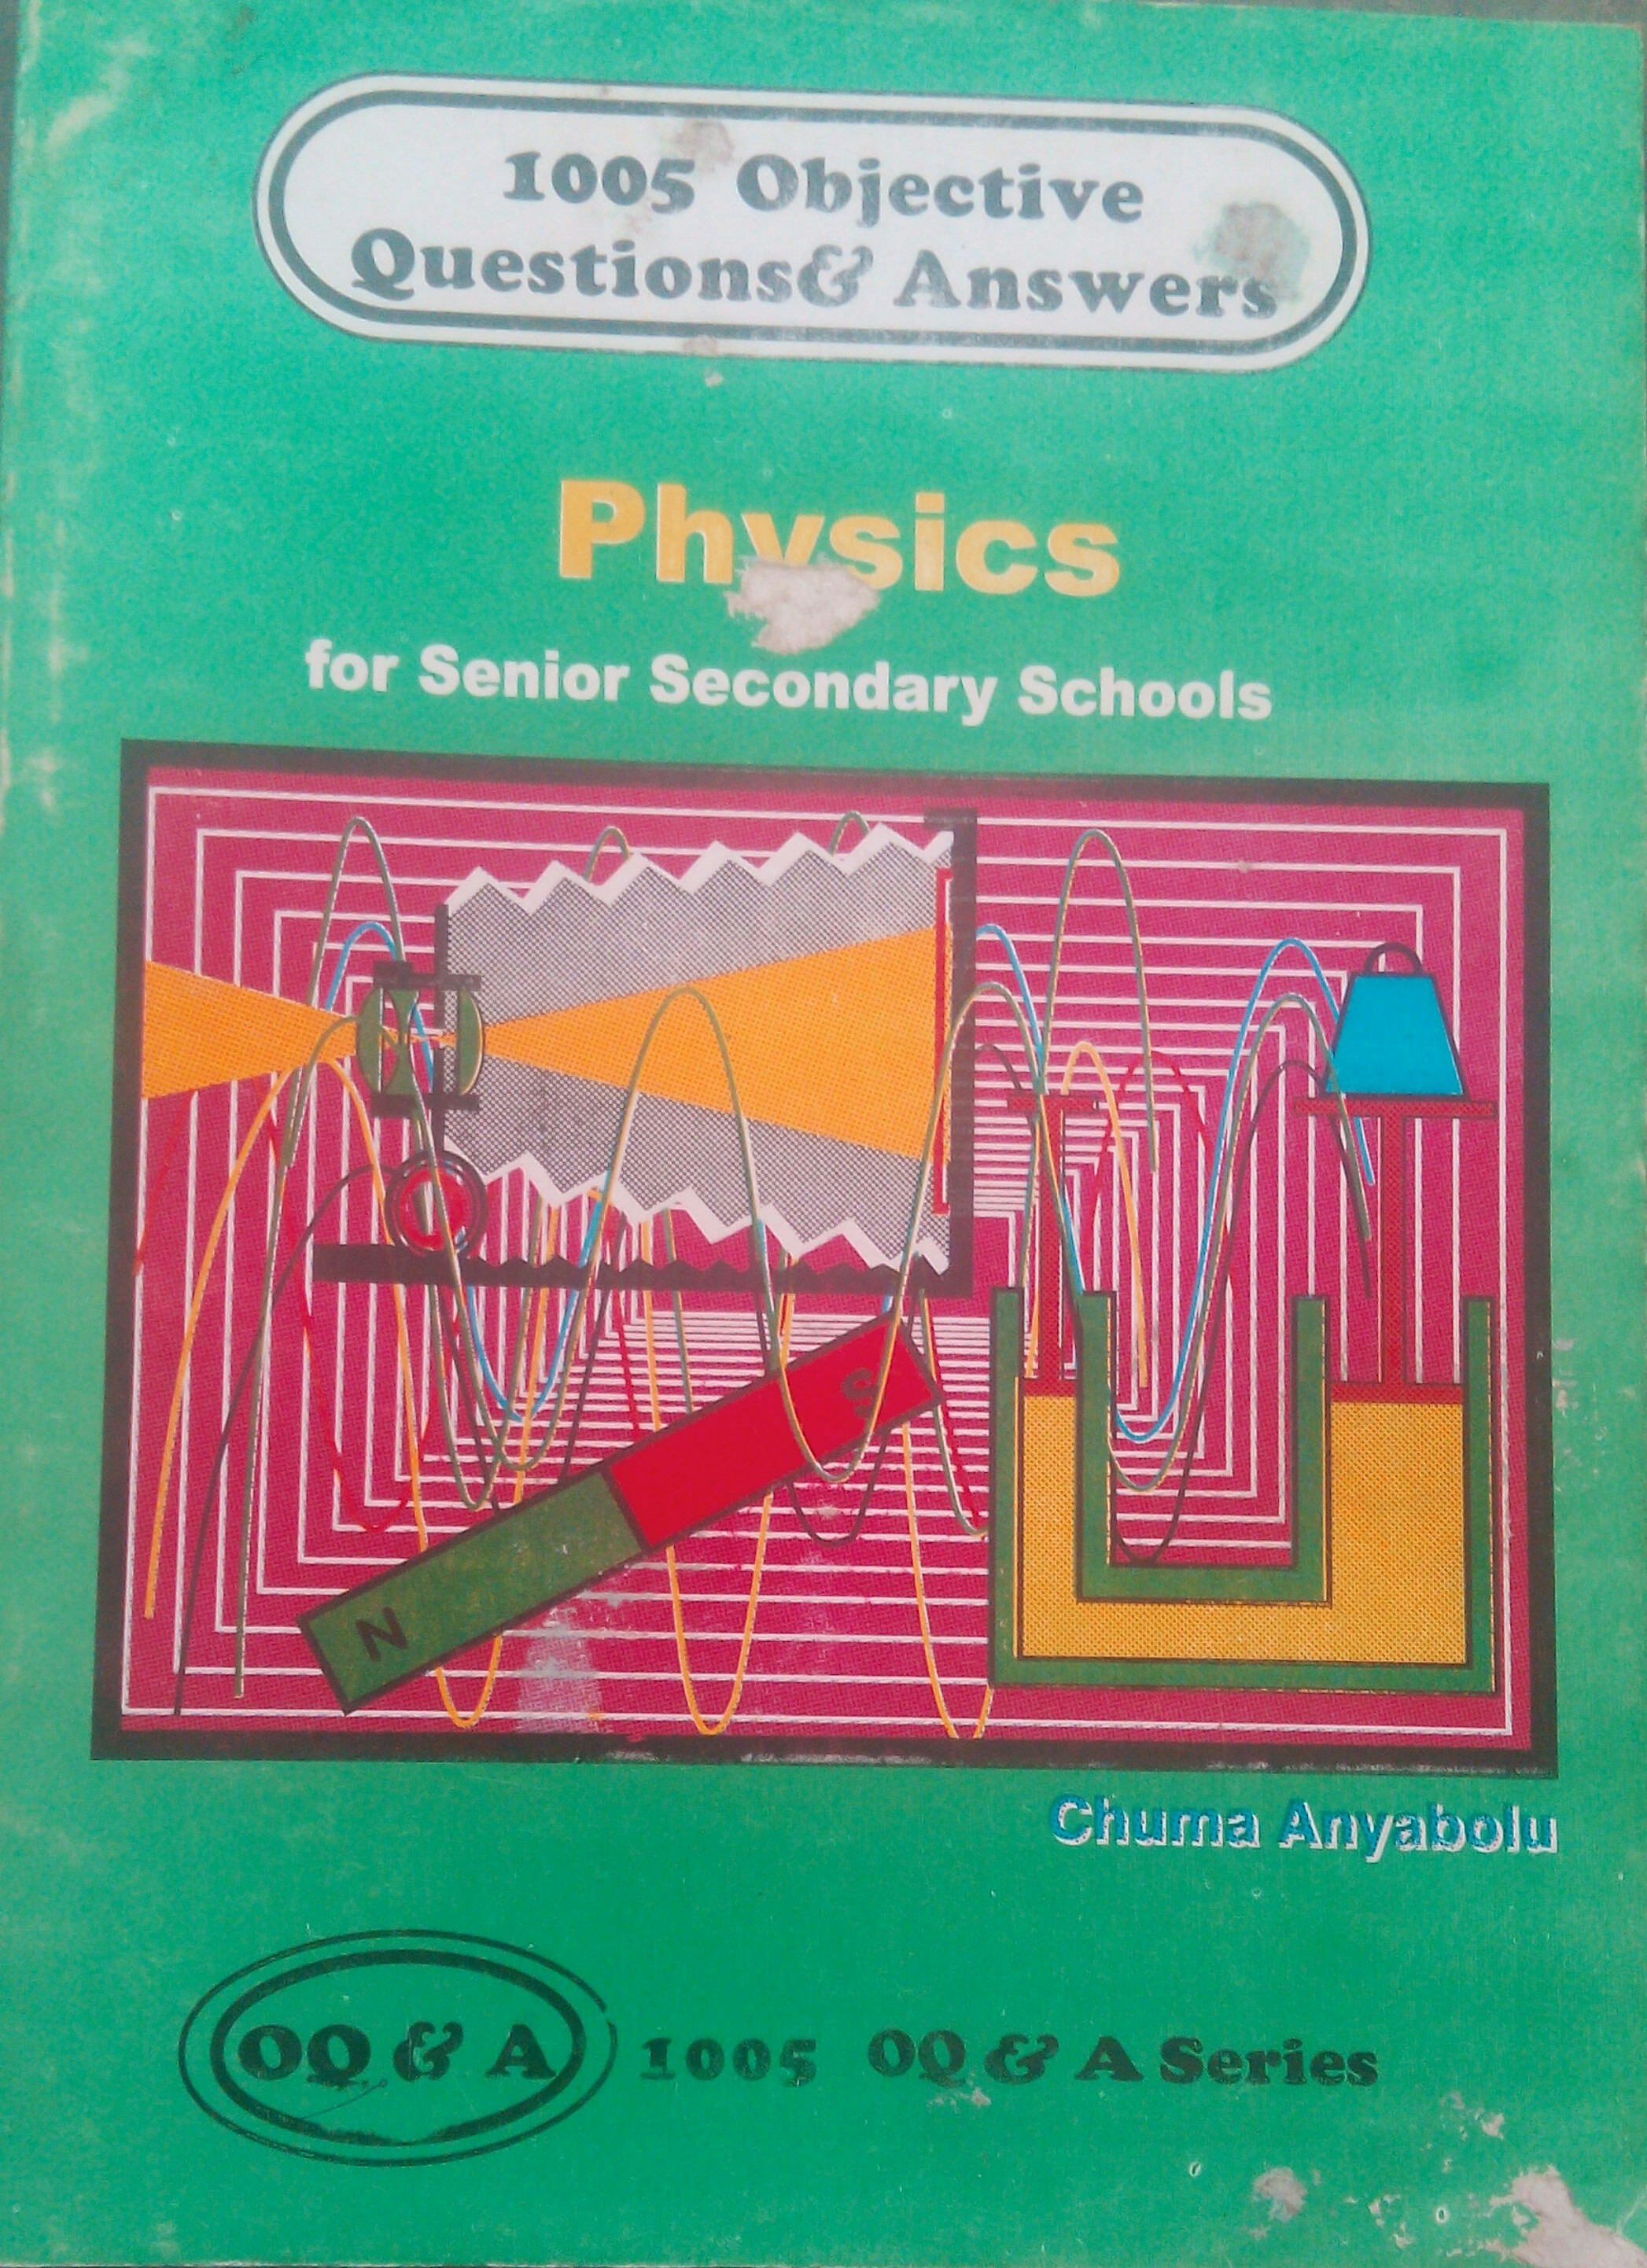 1005 Objective Question & Answers: Physics for Senior Secondary School